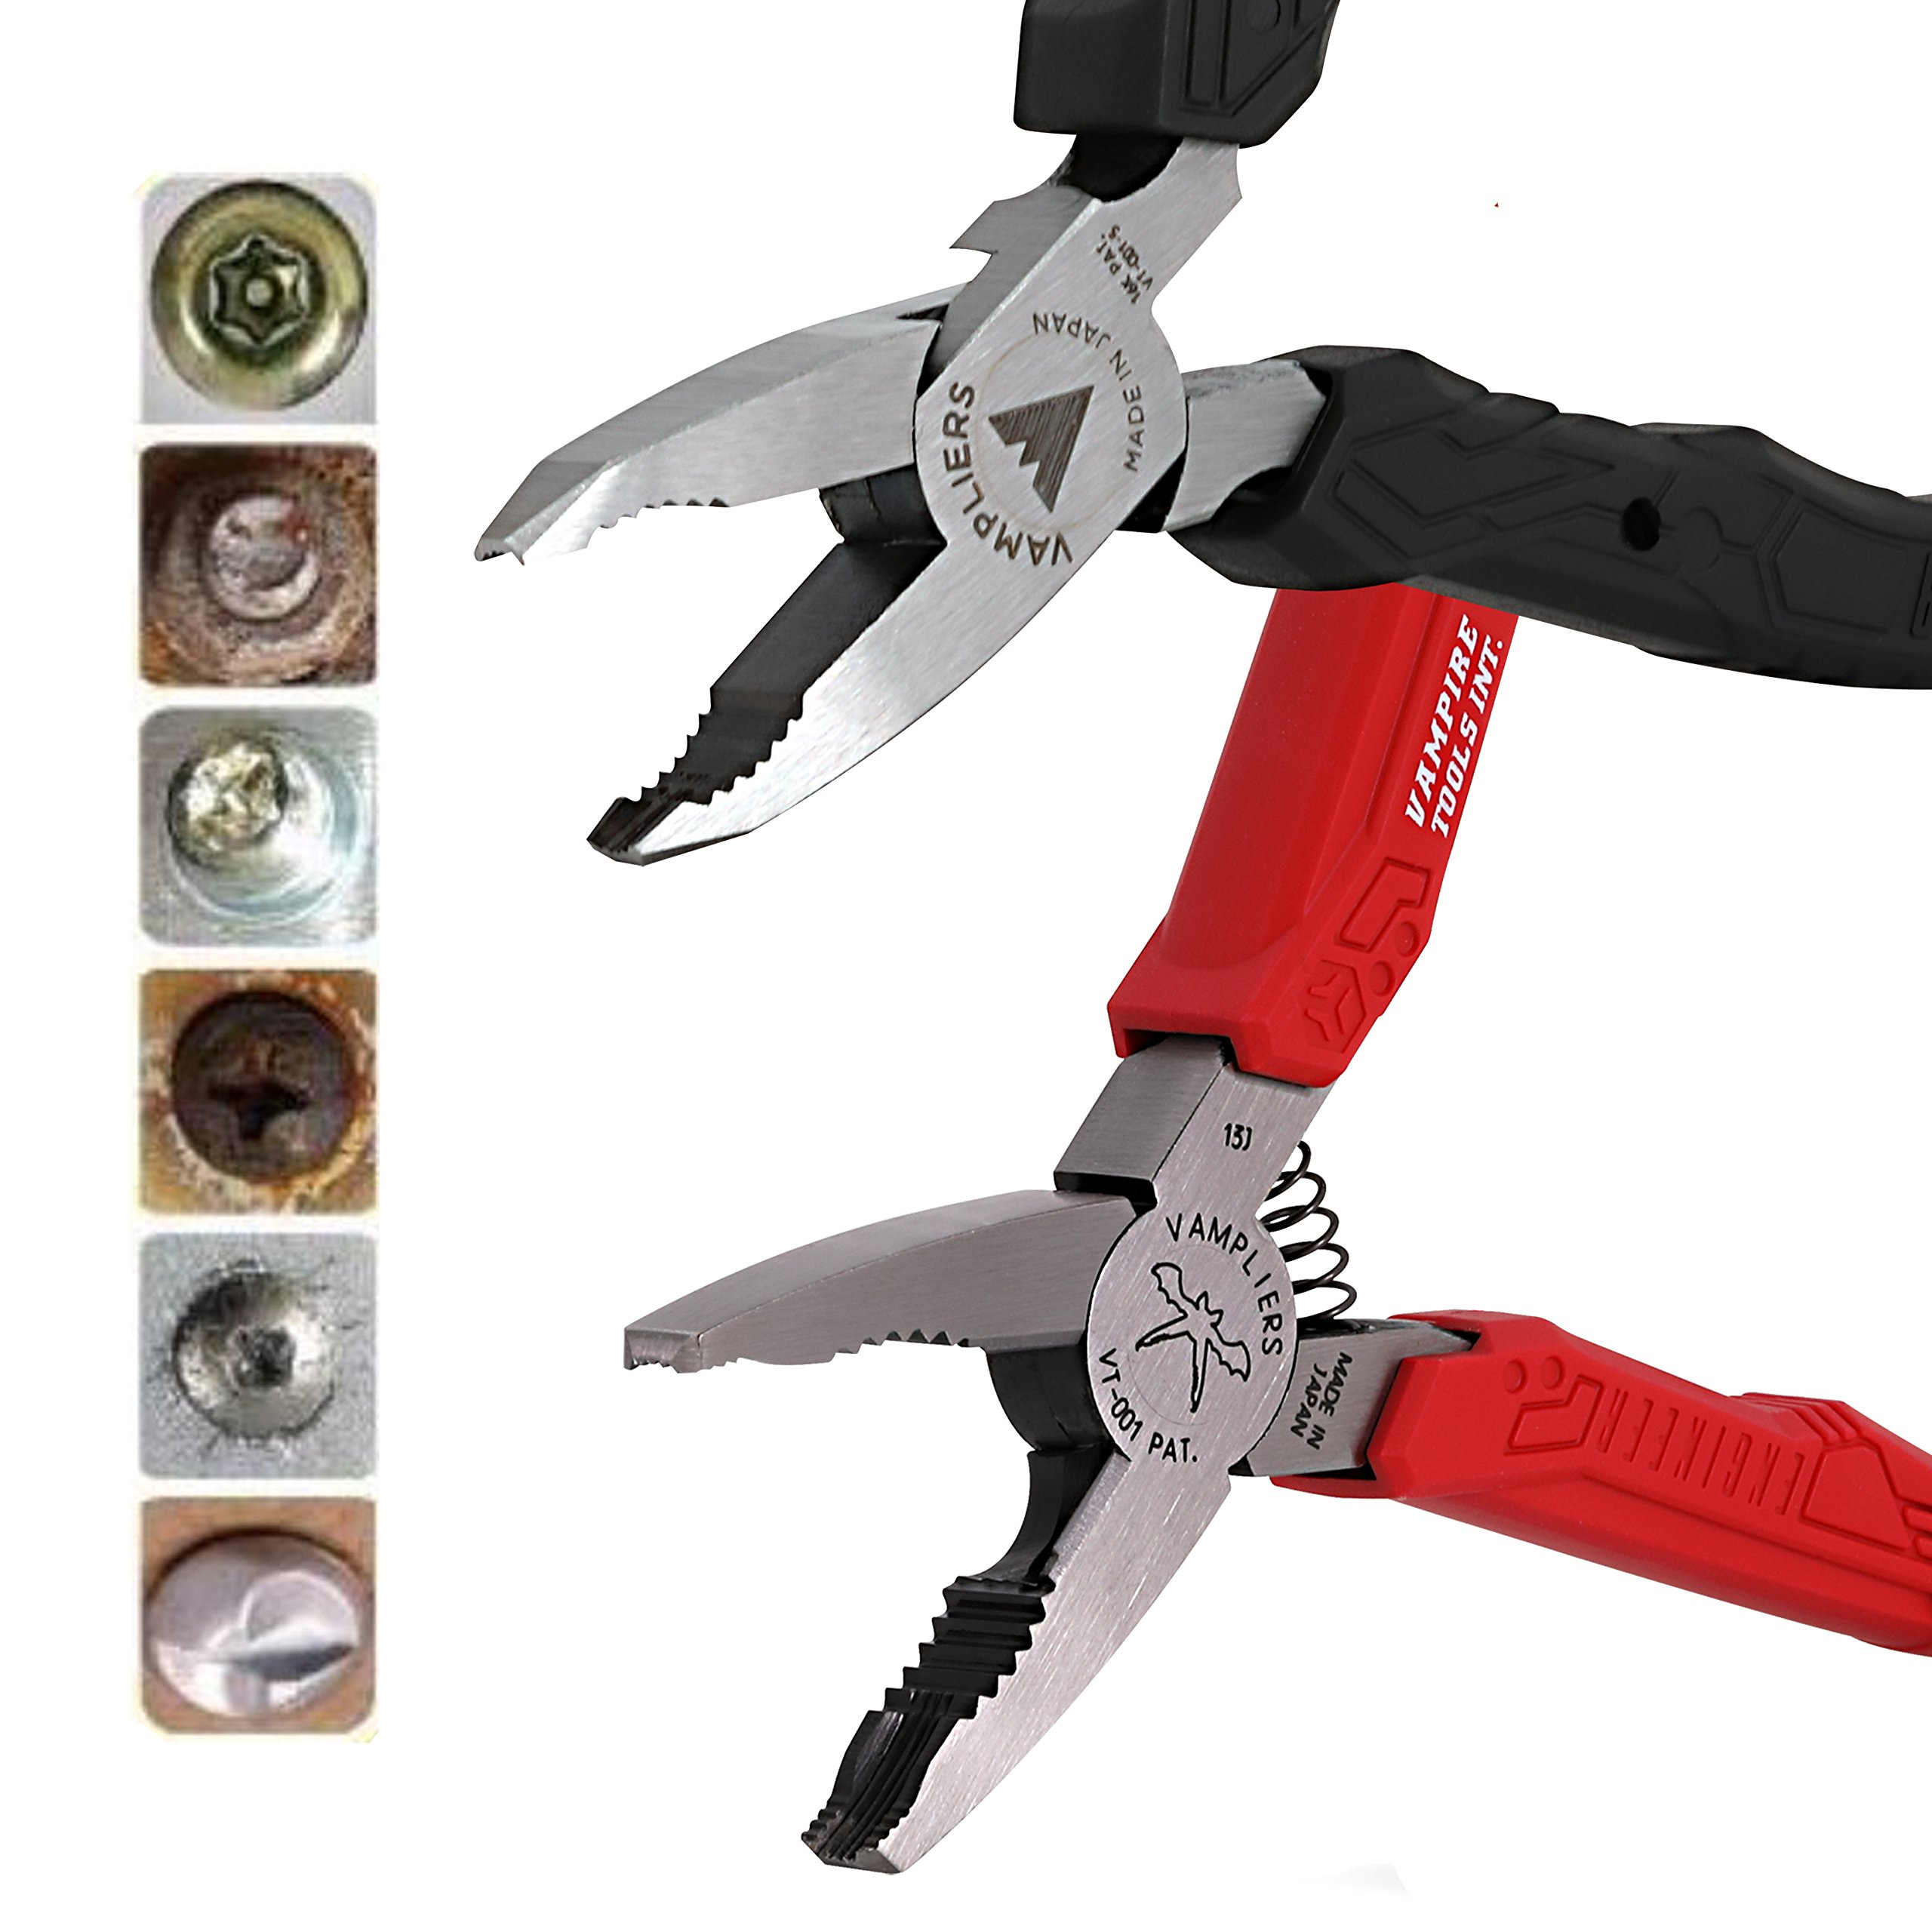 VamPLIERS 2-pc Set S2A 5'' Mini and 6.25'' Specialty Pliers Extract Stripped Stuck Screws Rounded Nuts Bolts by Vampliers